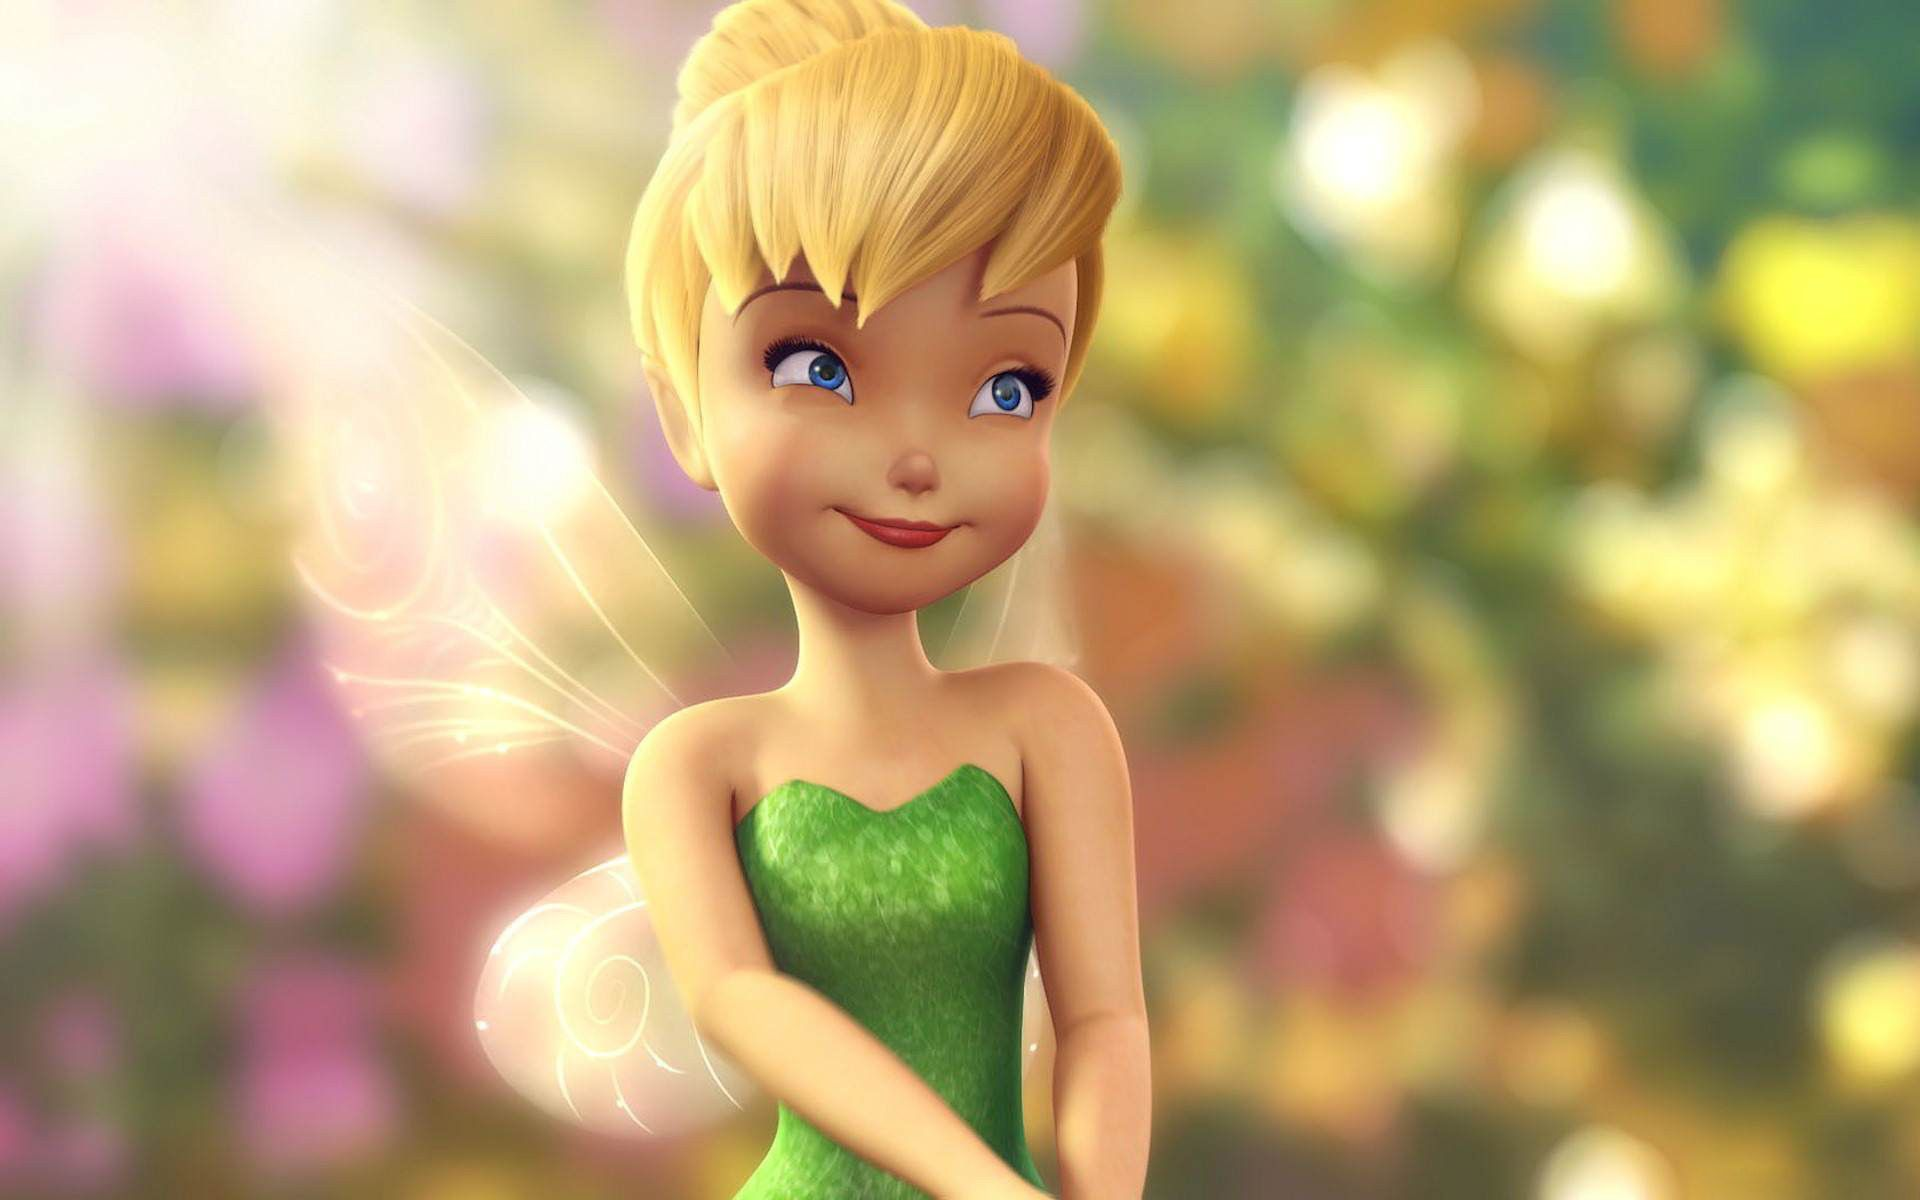 Undefined Tinkerbell Wallpapers Hd 50 Wallpapers Adorable Wallpapers Tinkerbell Wallpaper Tinkerbell Tinkerbell Pictures